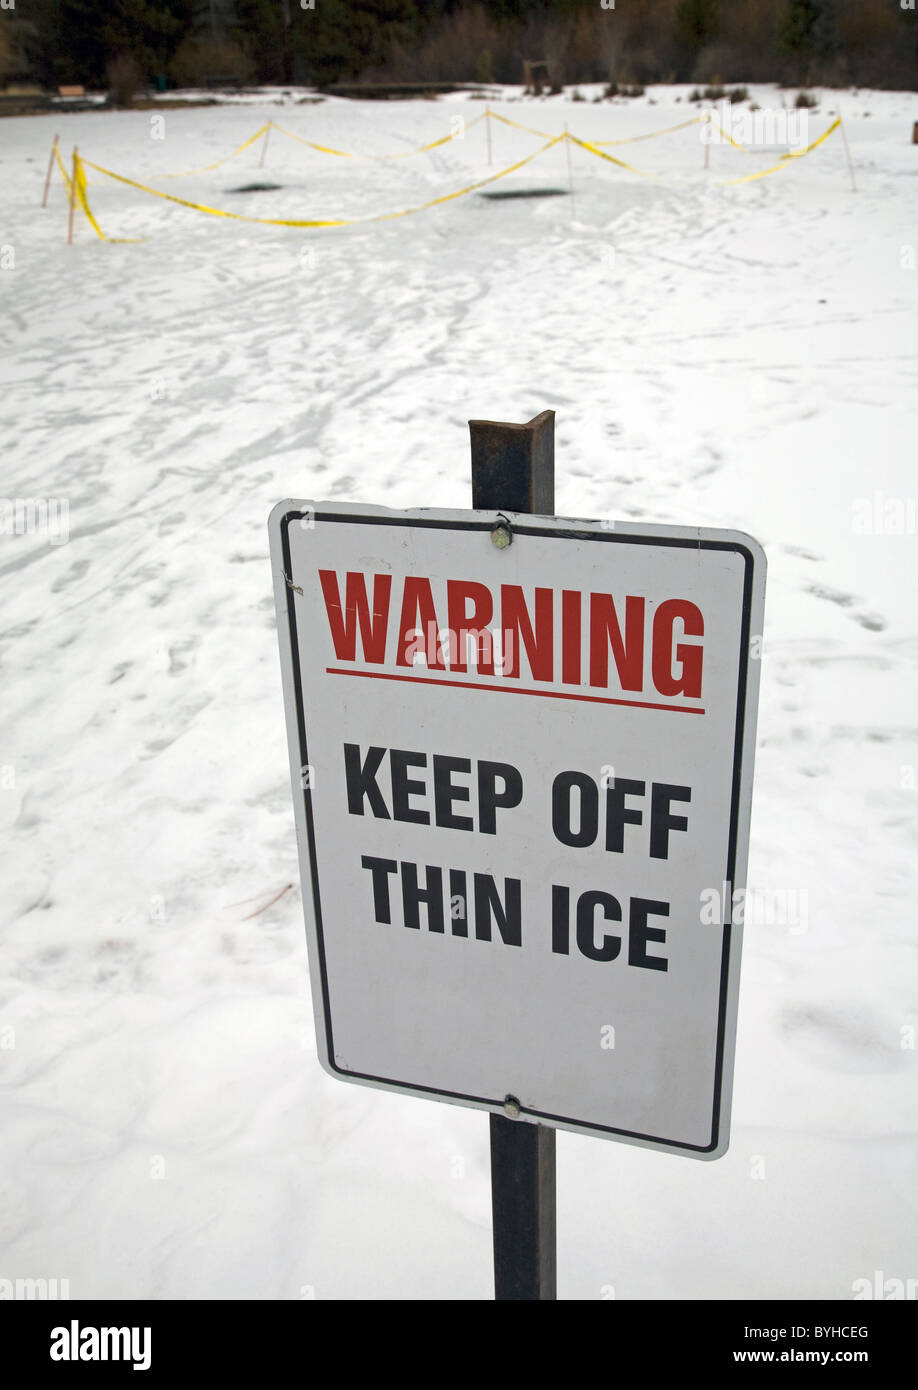 A thin ice sign warns skaters away from a pond - Stock Image